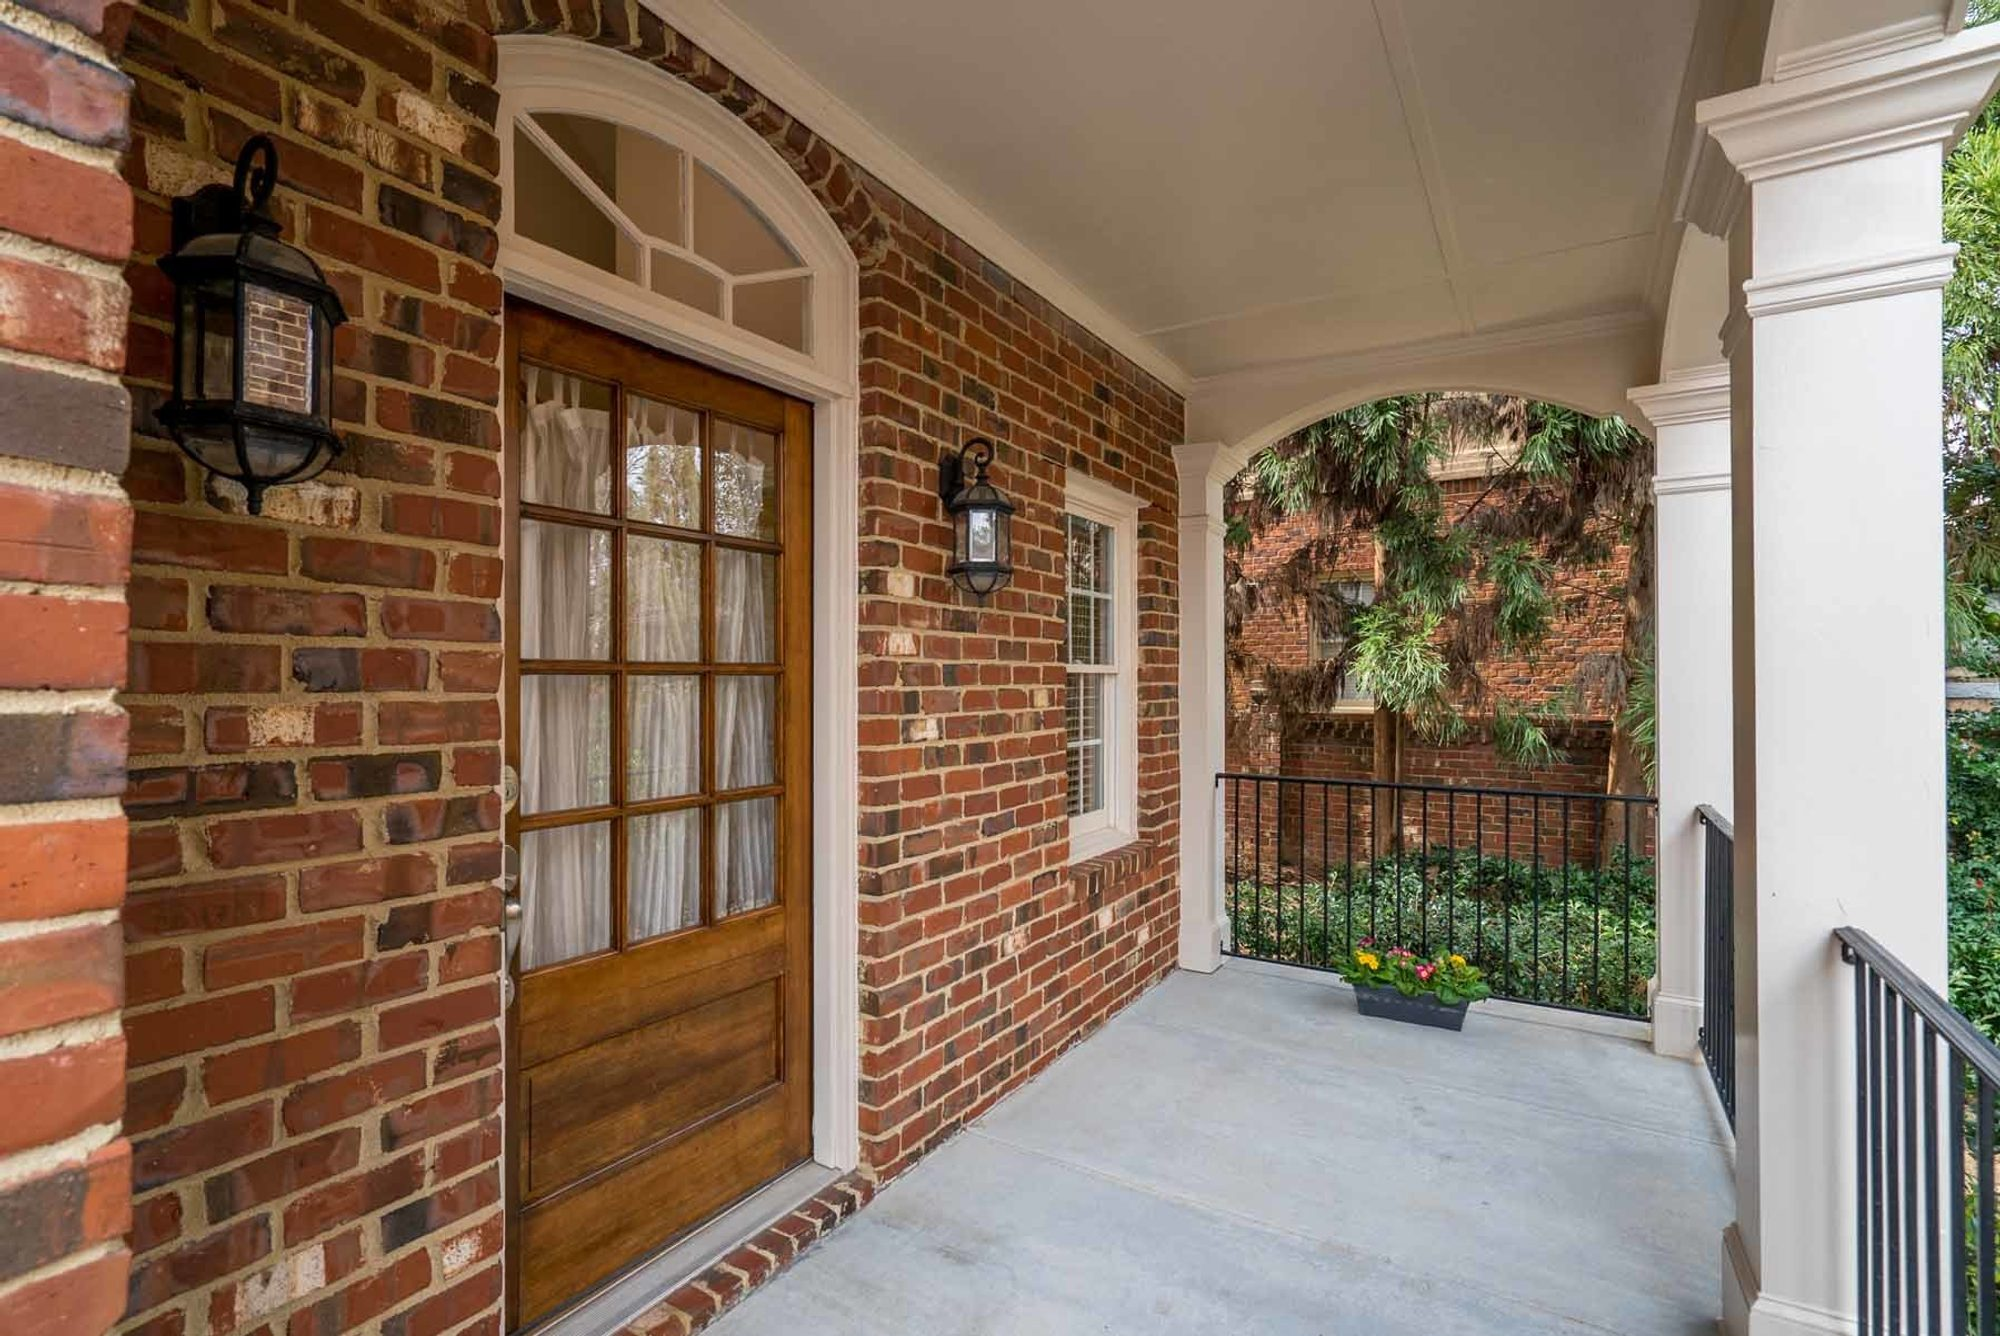 Covered front porch with a concrete floor. red brick walls. square columns with black iron railings.